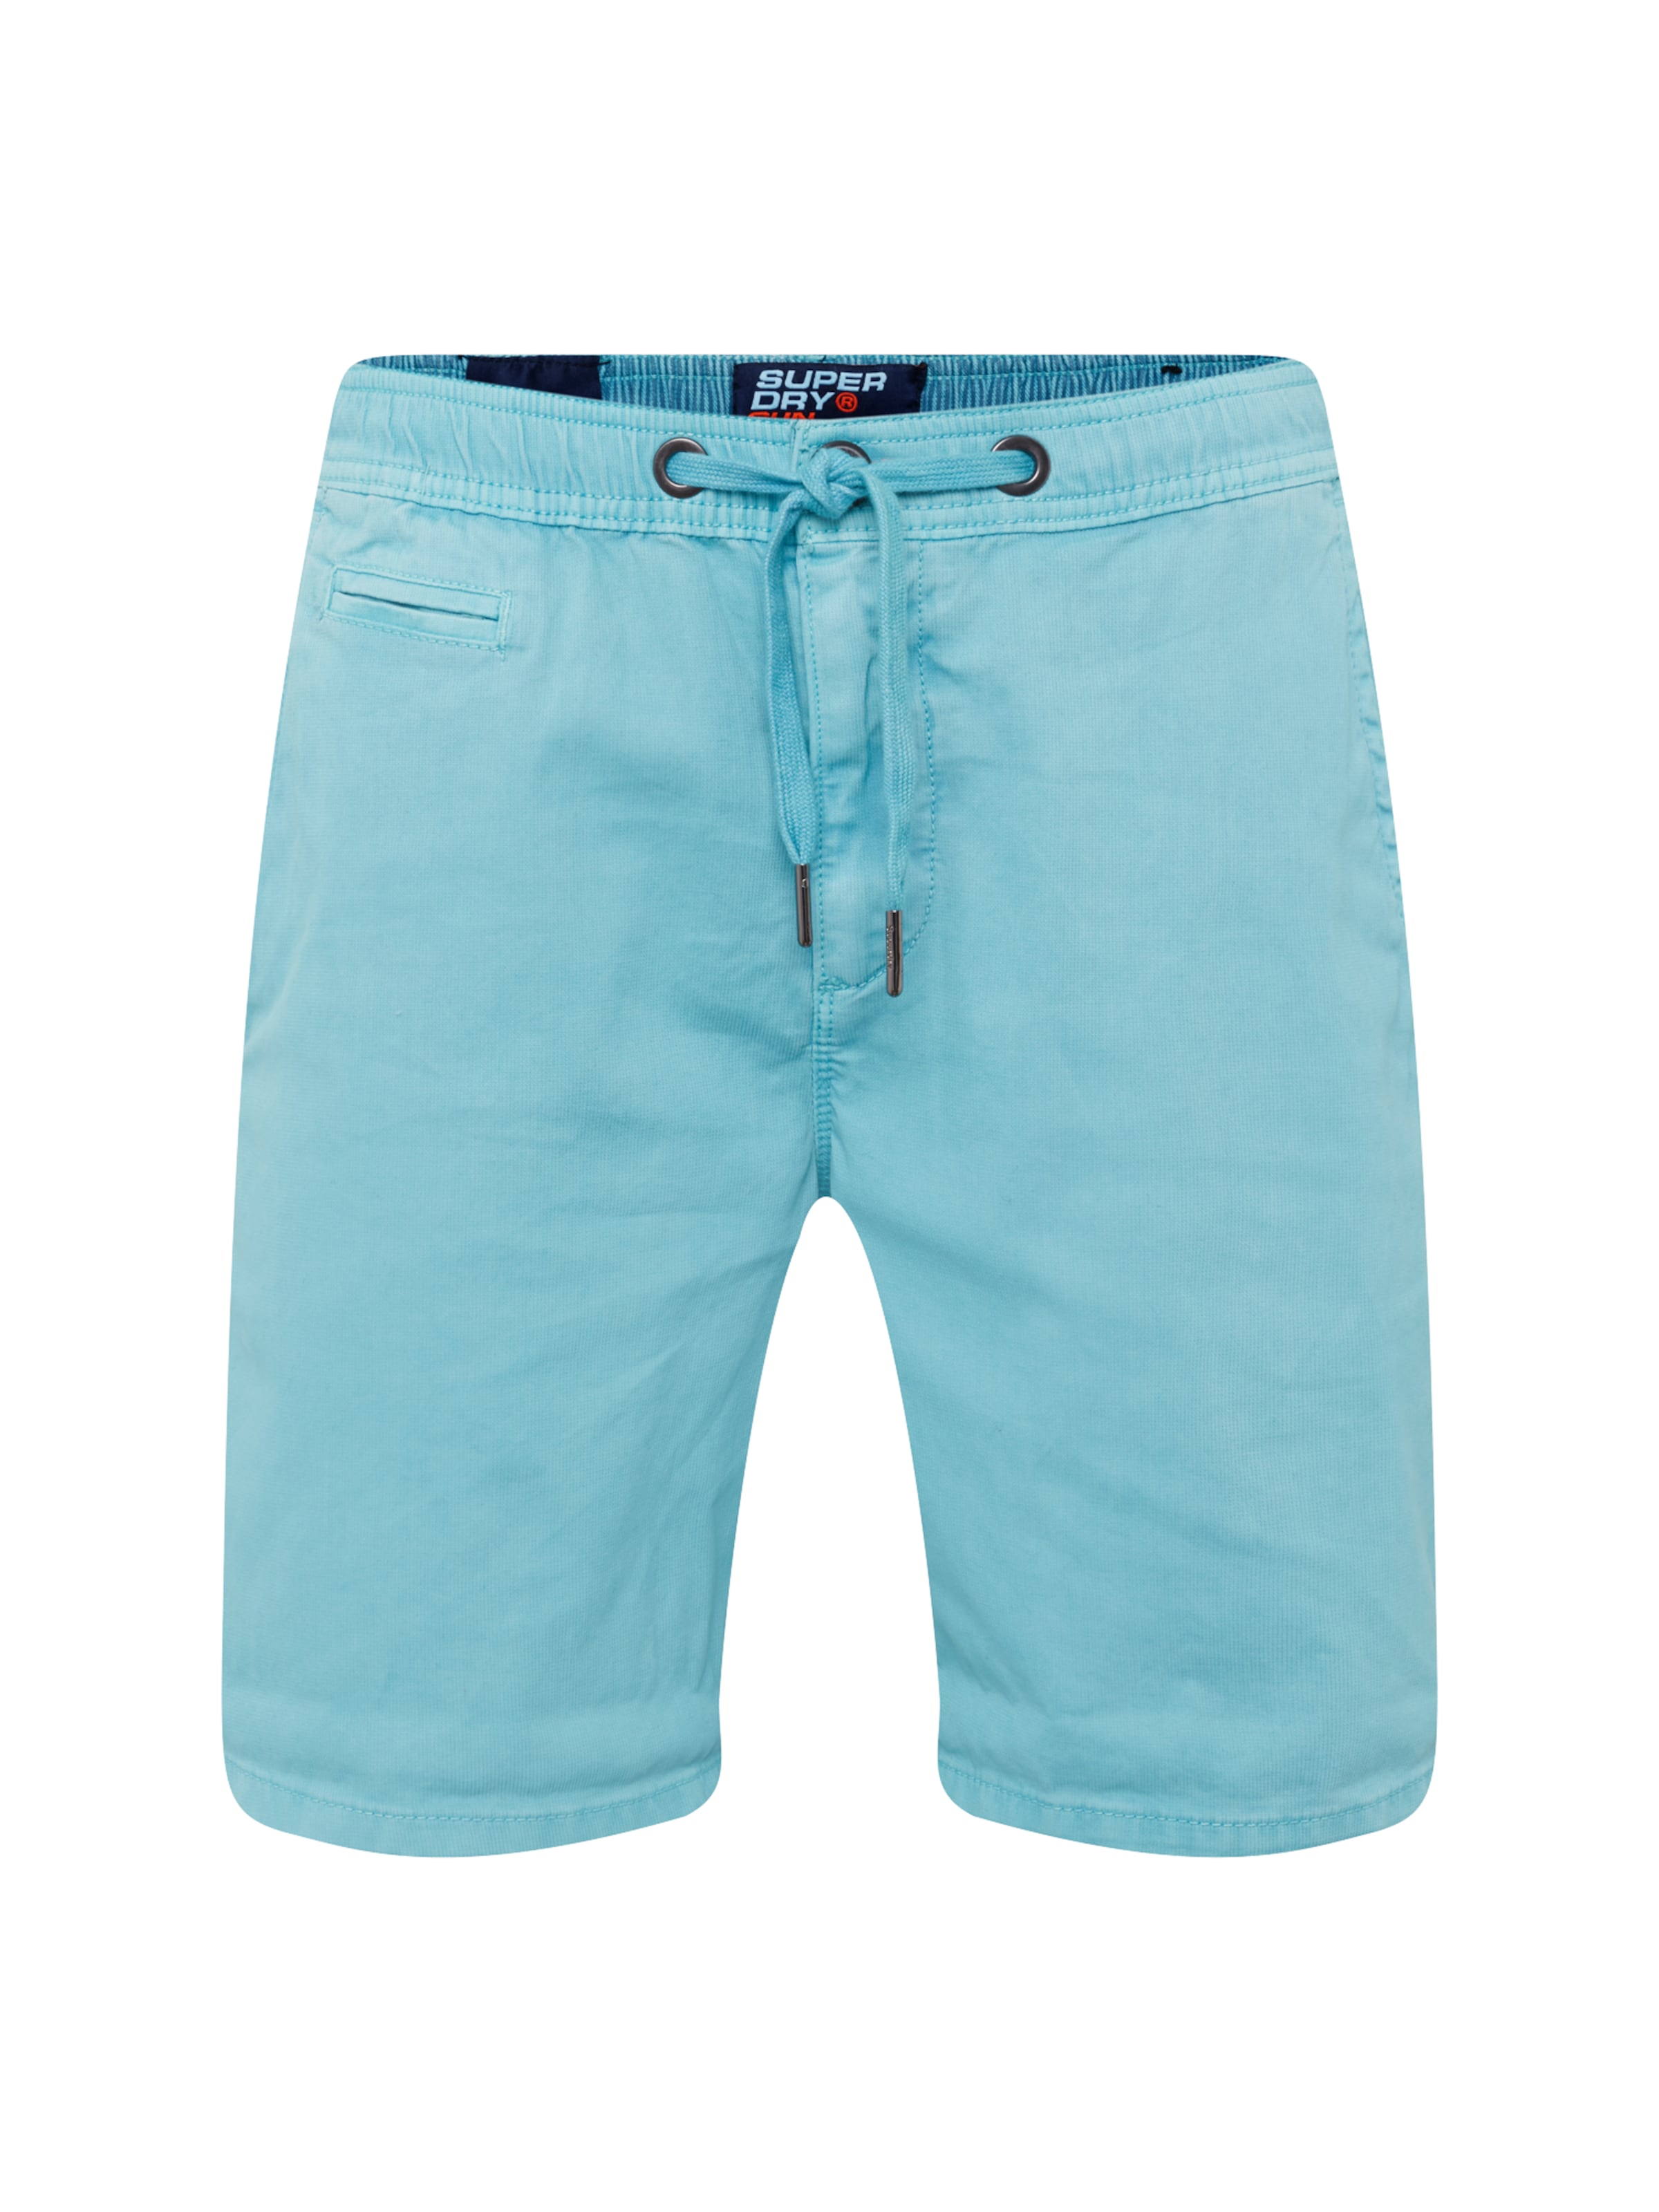 Superdry En Pantalon 'sunscorched' Bleu Clair HD9IYW2E